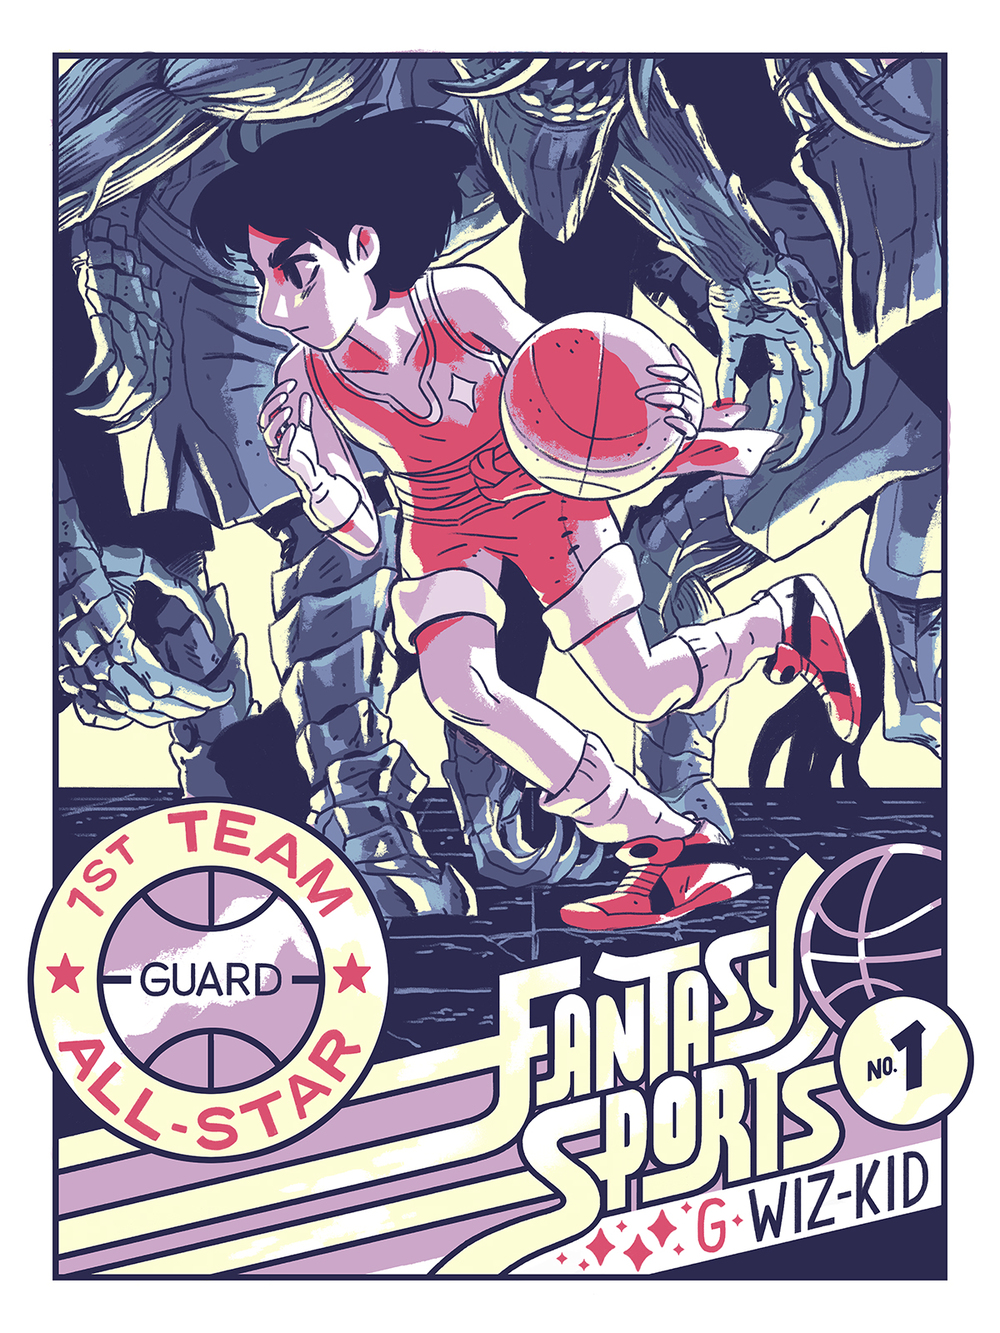 Fantasy Sports #1 Wiz-Kid Poster